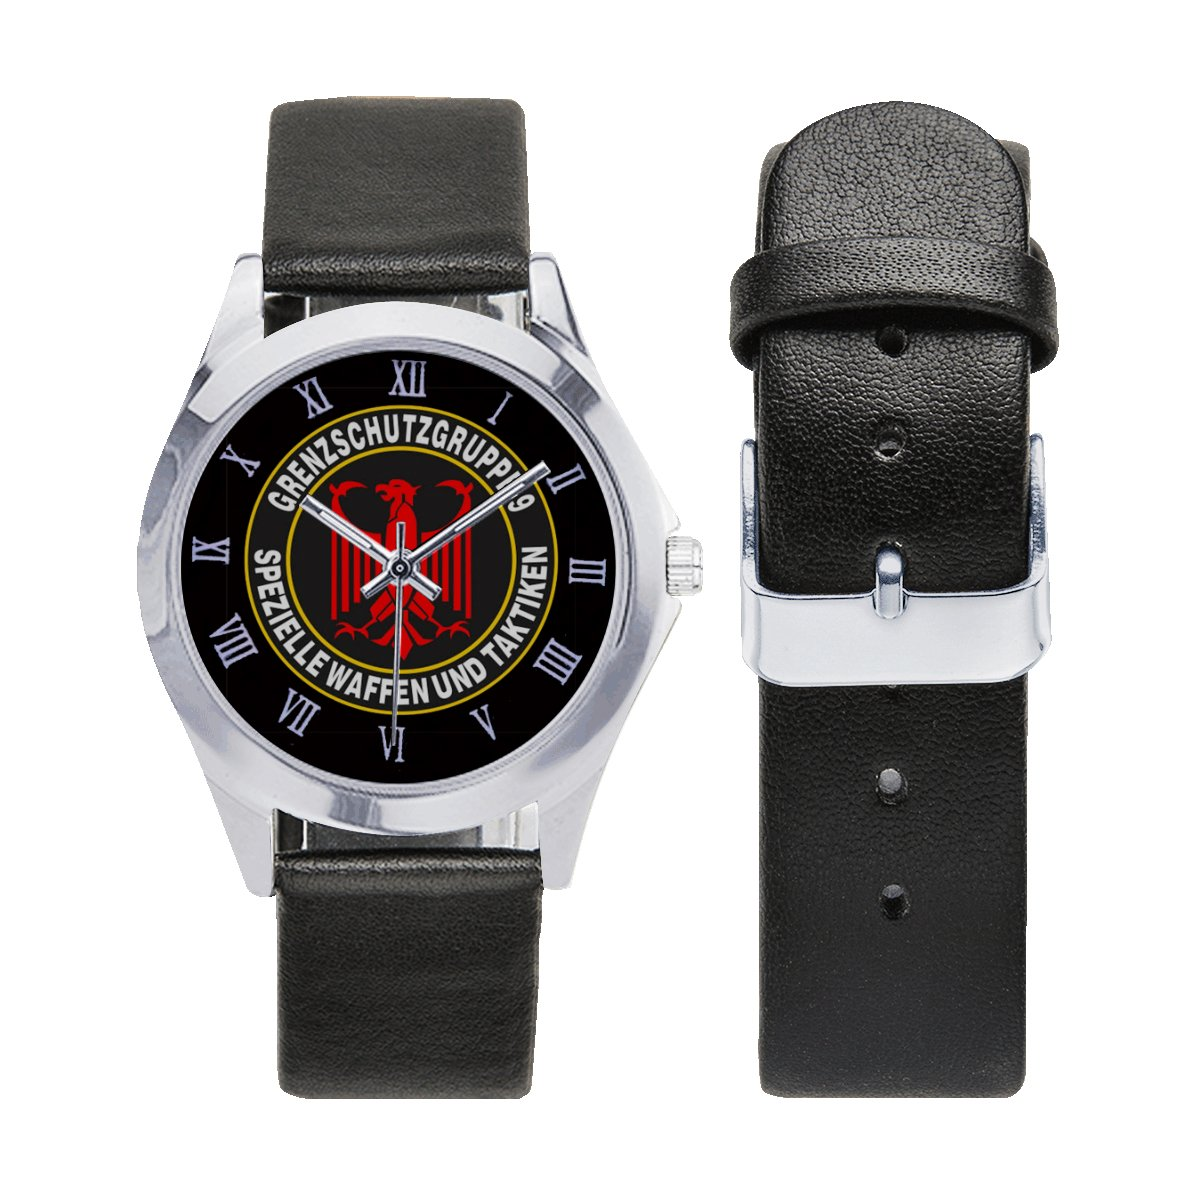 Germany Special Forces GSG-9 Leather Strap Watch Wrist Watches a perfect accessory